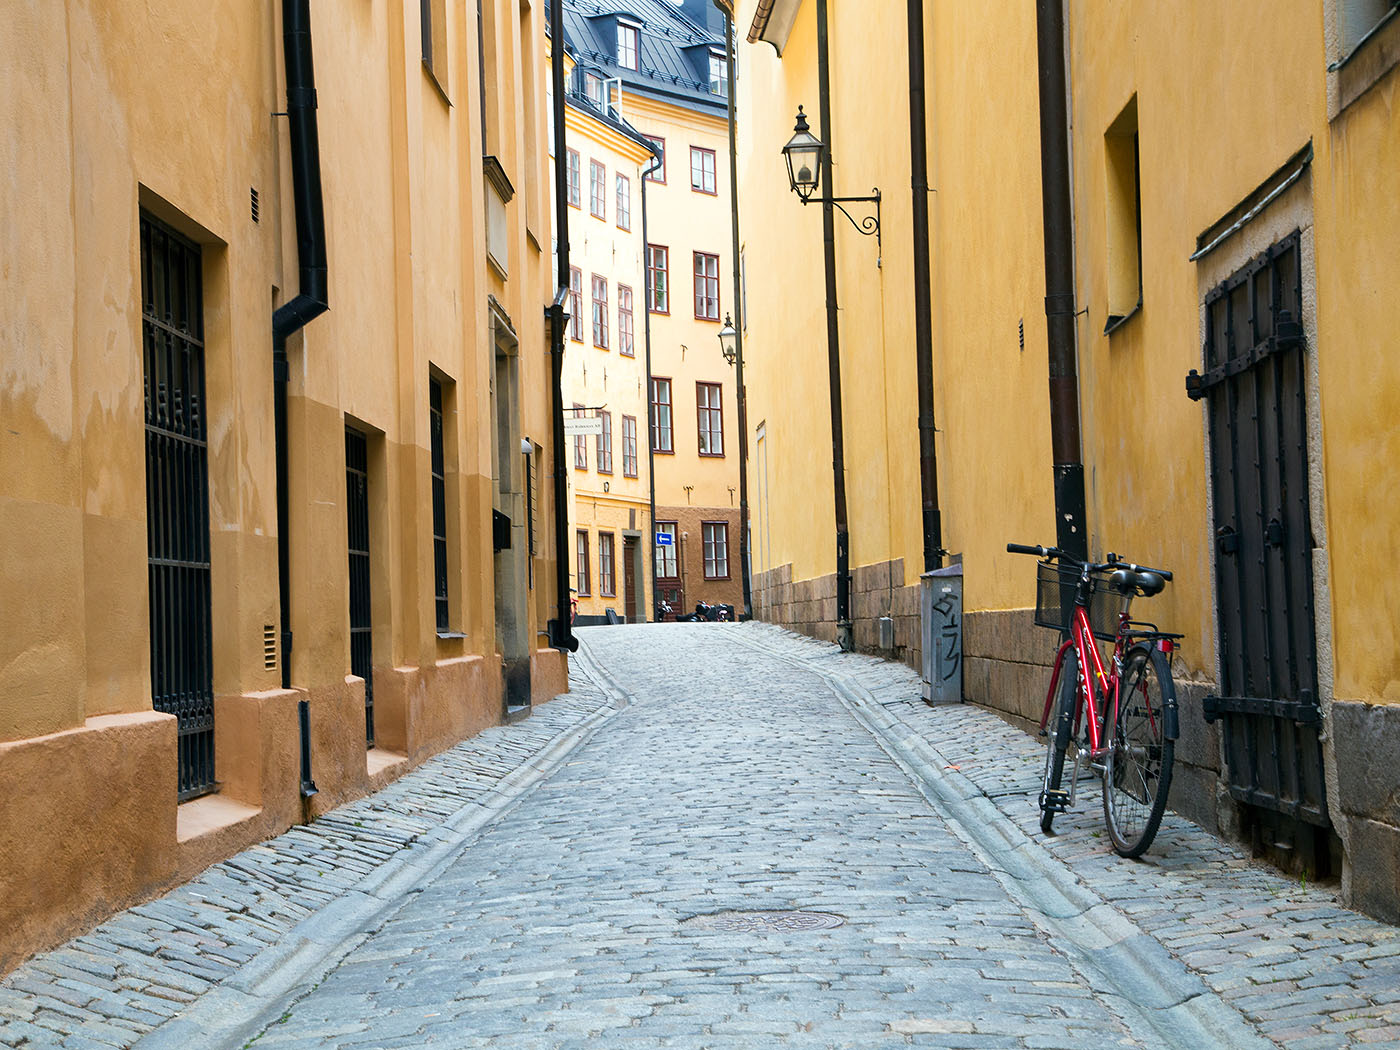 'Stockholm Streets' by Tony Oliver